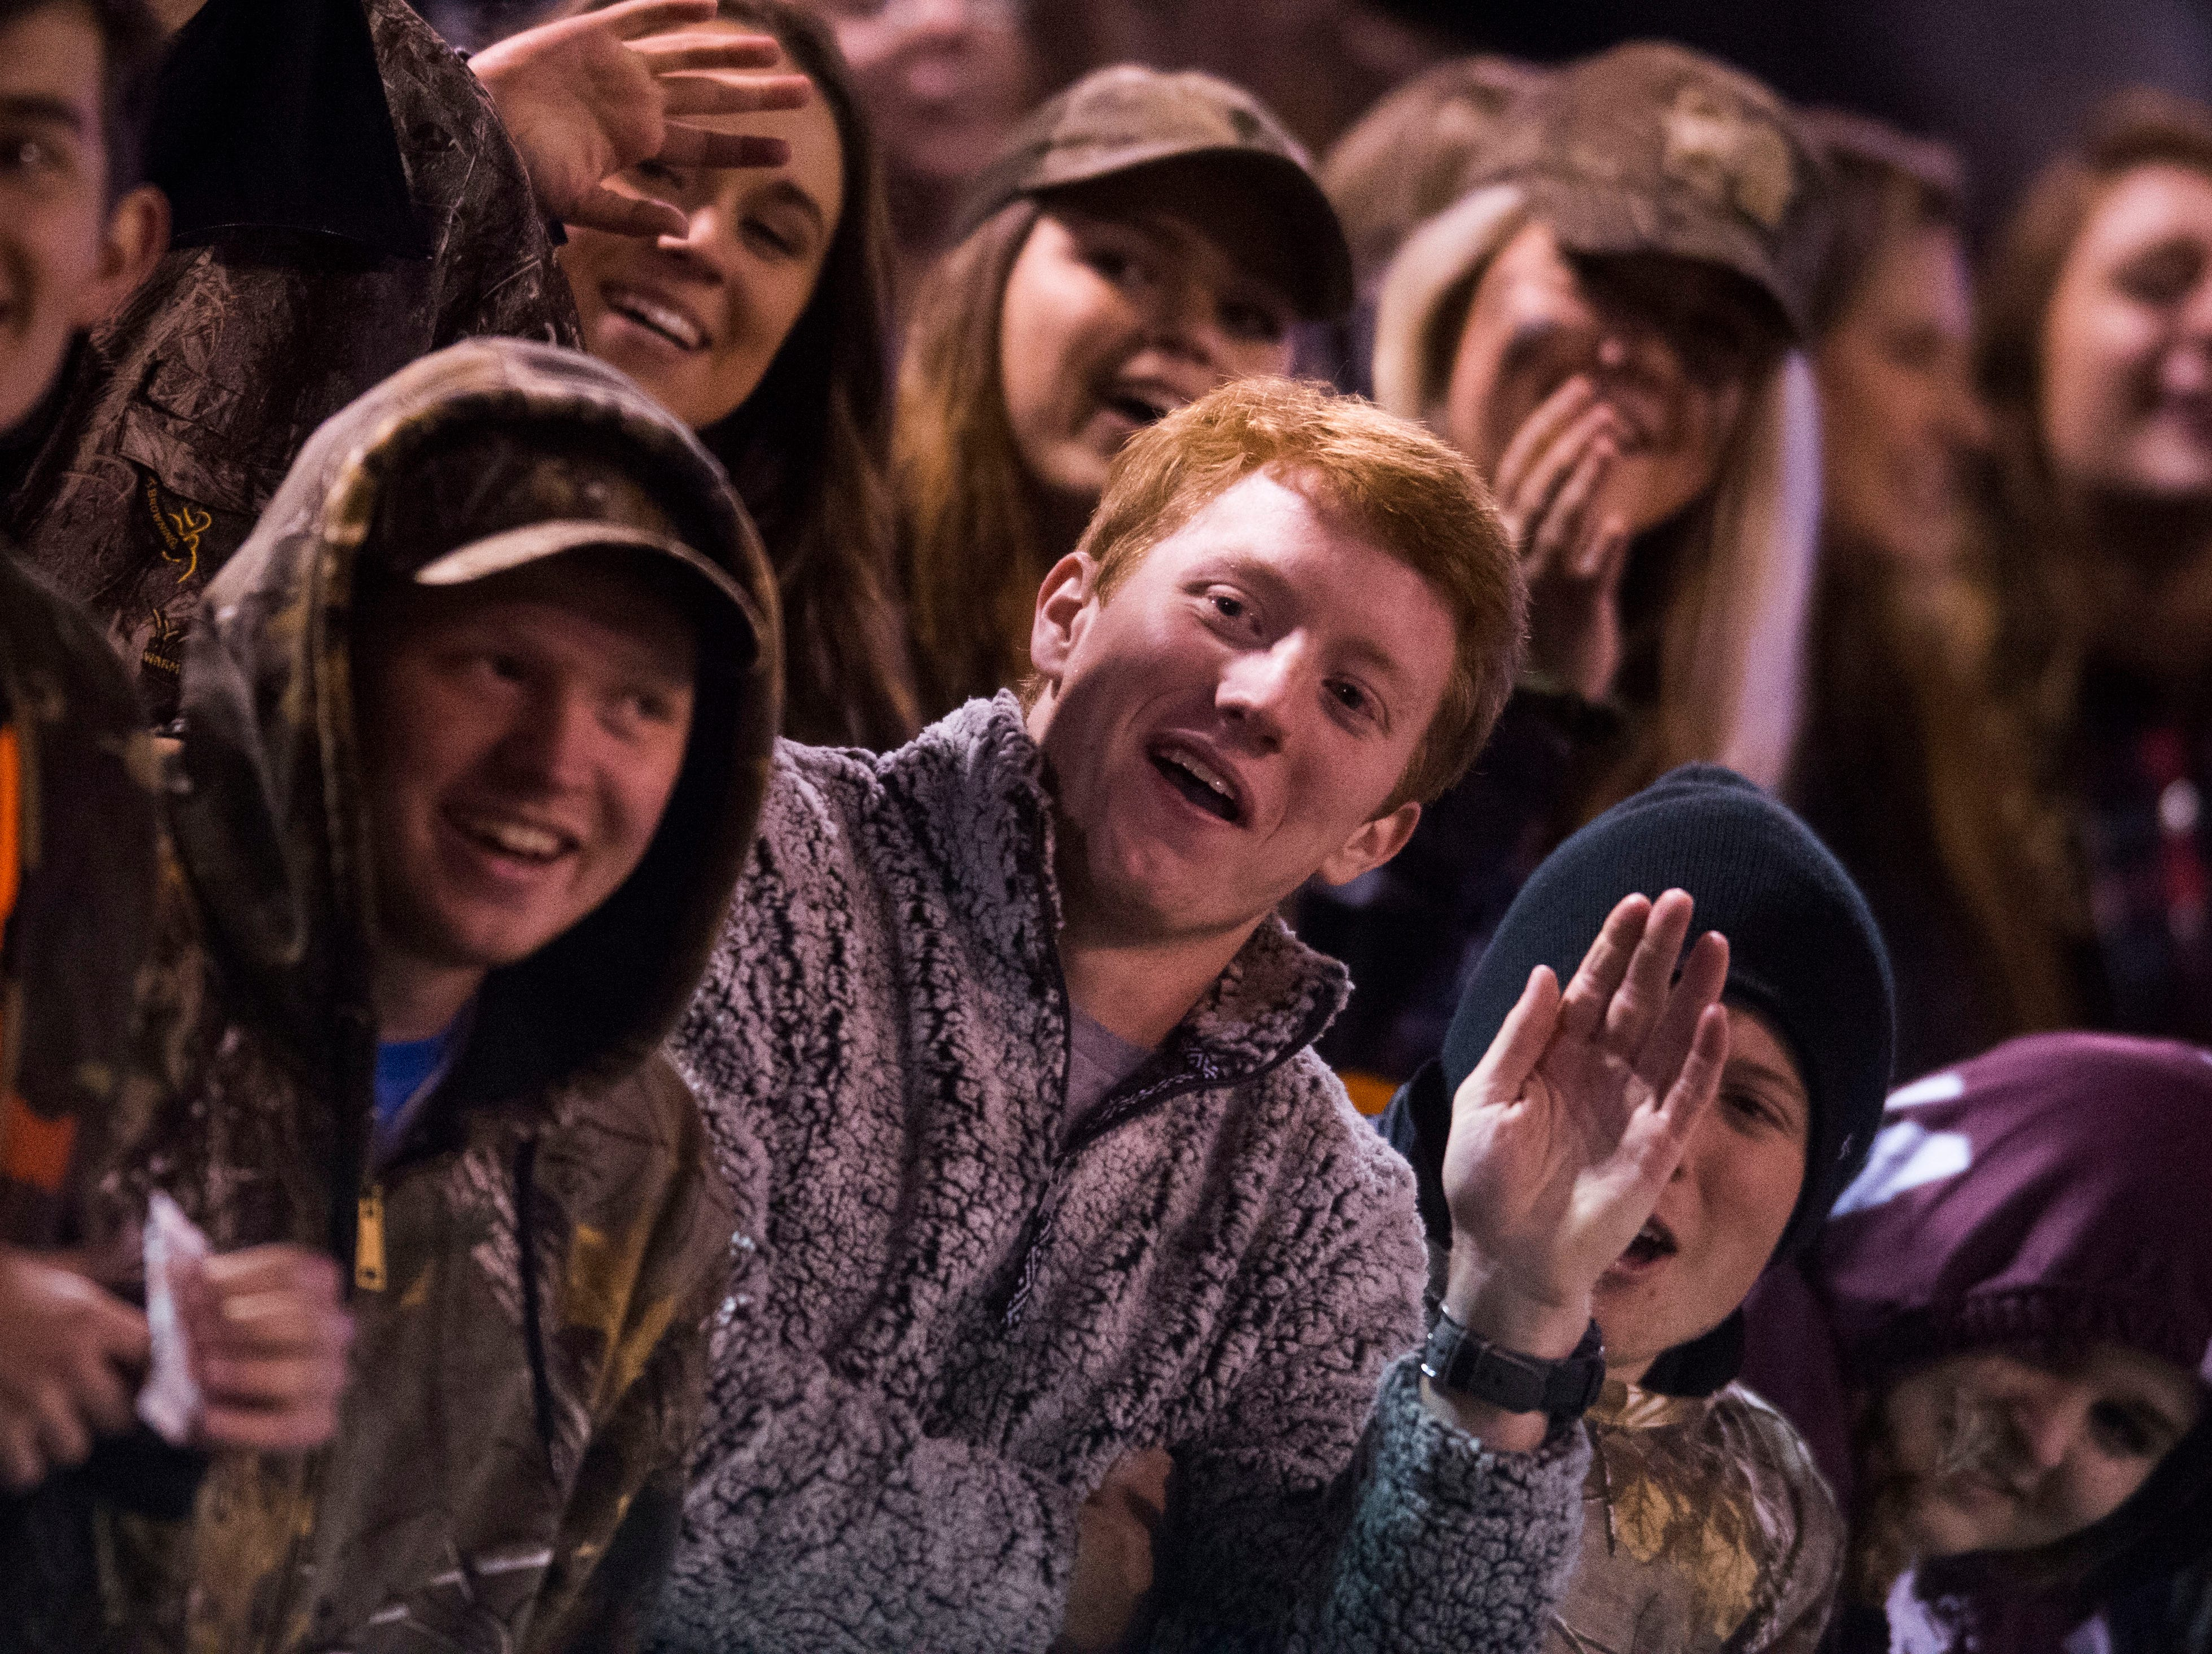 Bearden fans yell in the stands during a first round playoff game between Maryville and Bearden at Maryville, Friday, Nov. 2, 2018. Maryville defeated Bearden 28-7.